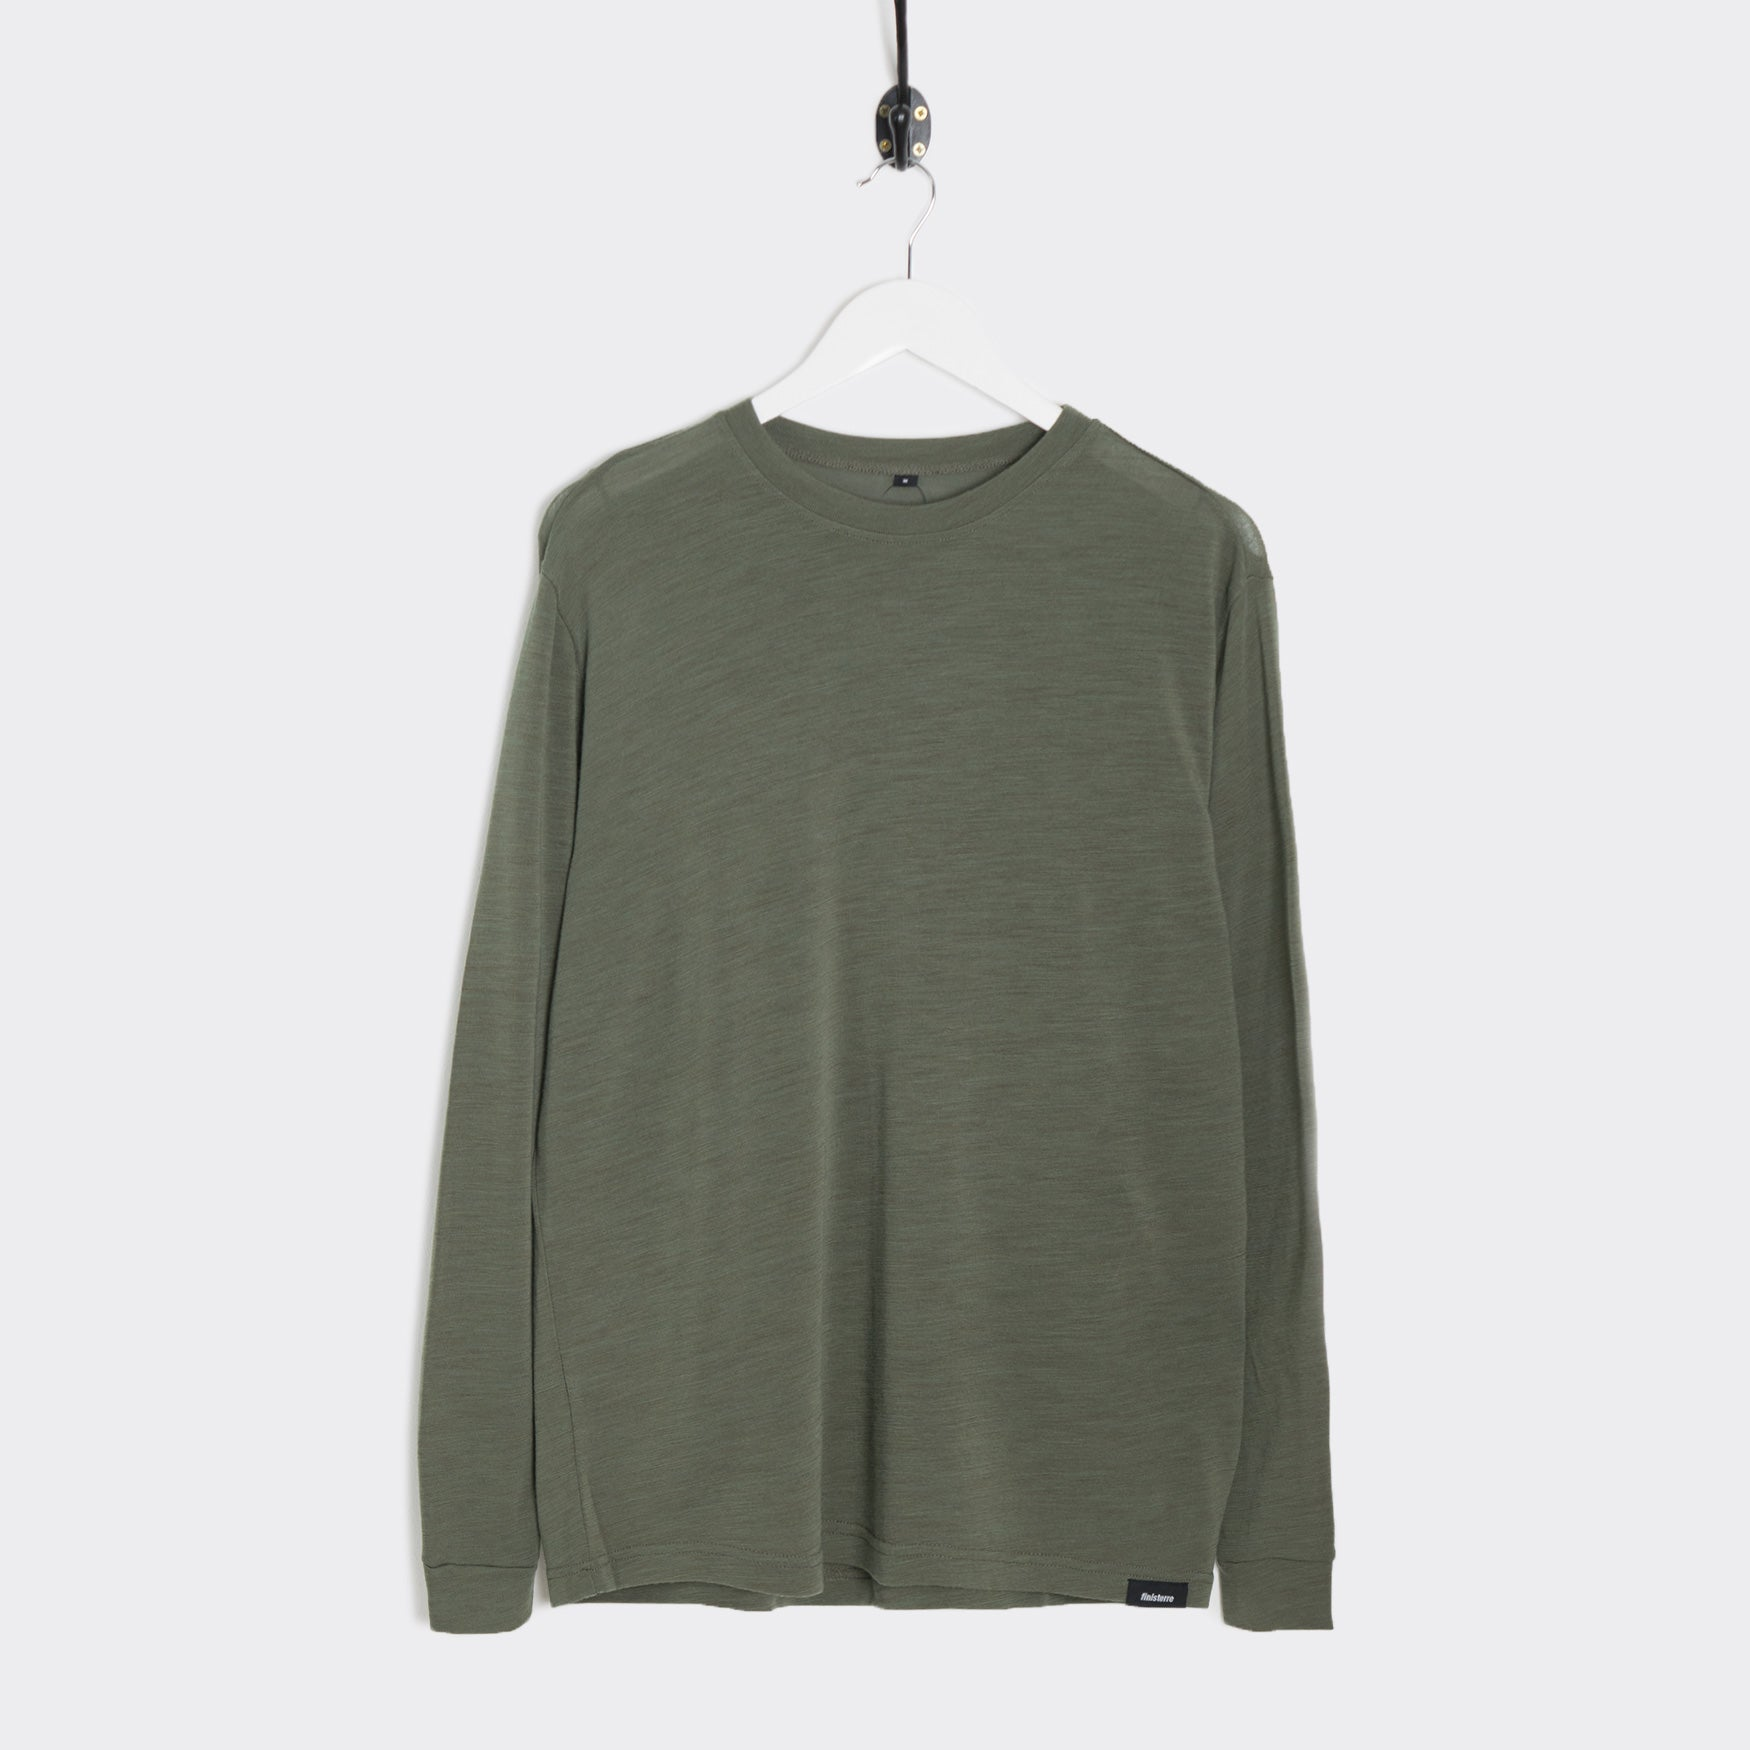 Finisterre Fiske Baselayer Merino Crew - Laurel T-Shirt - CARTOCON